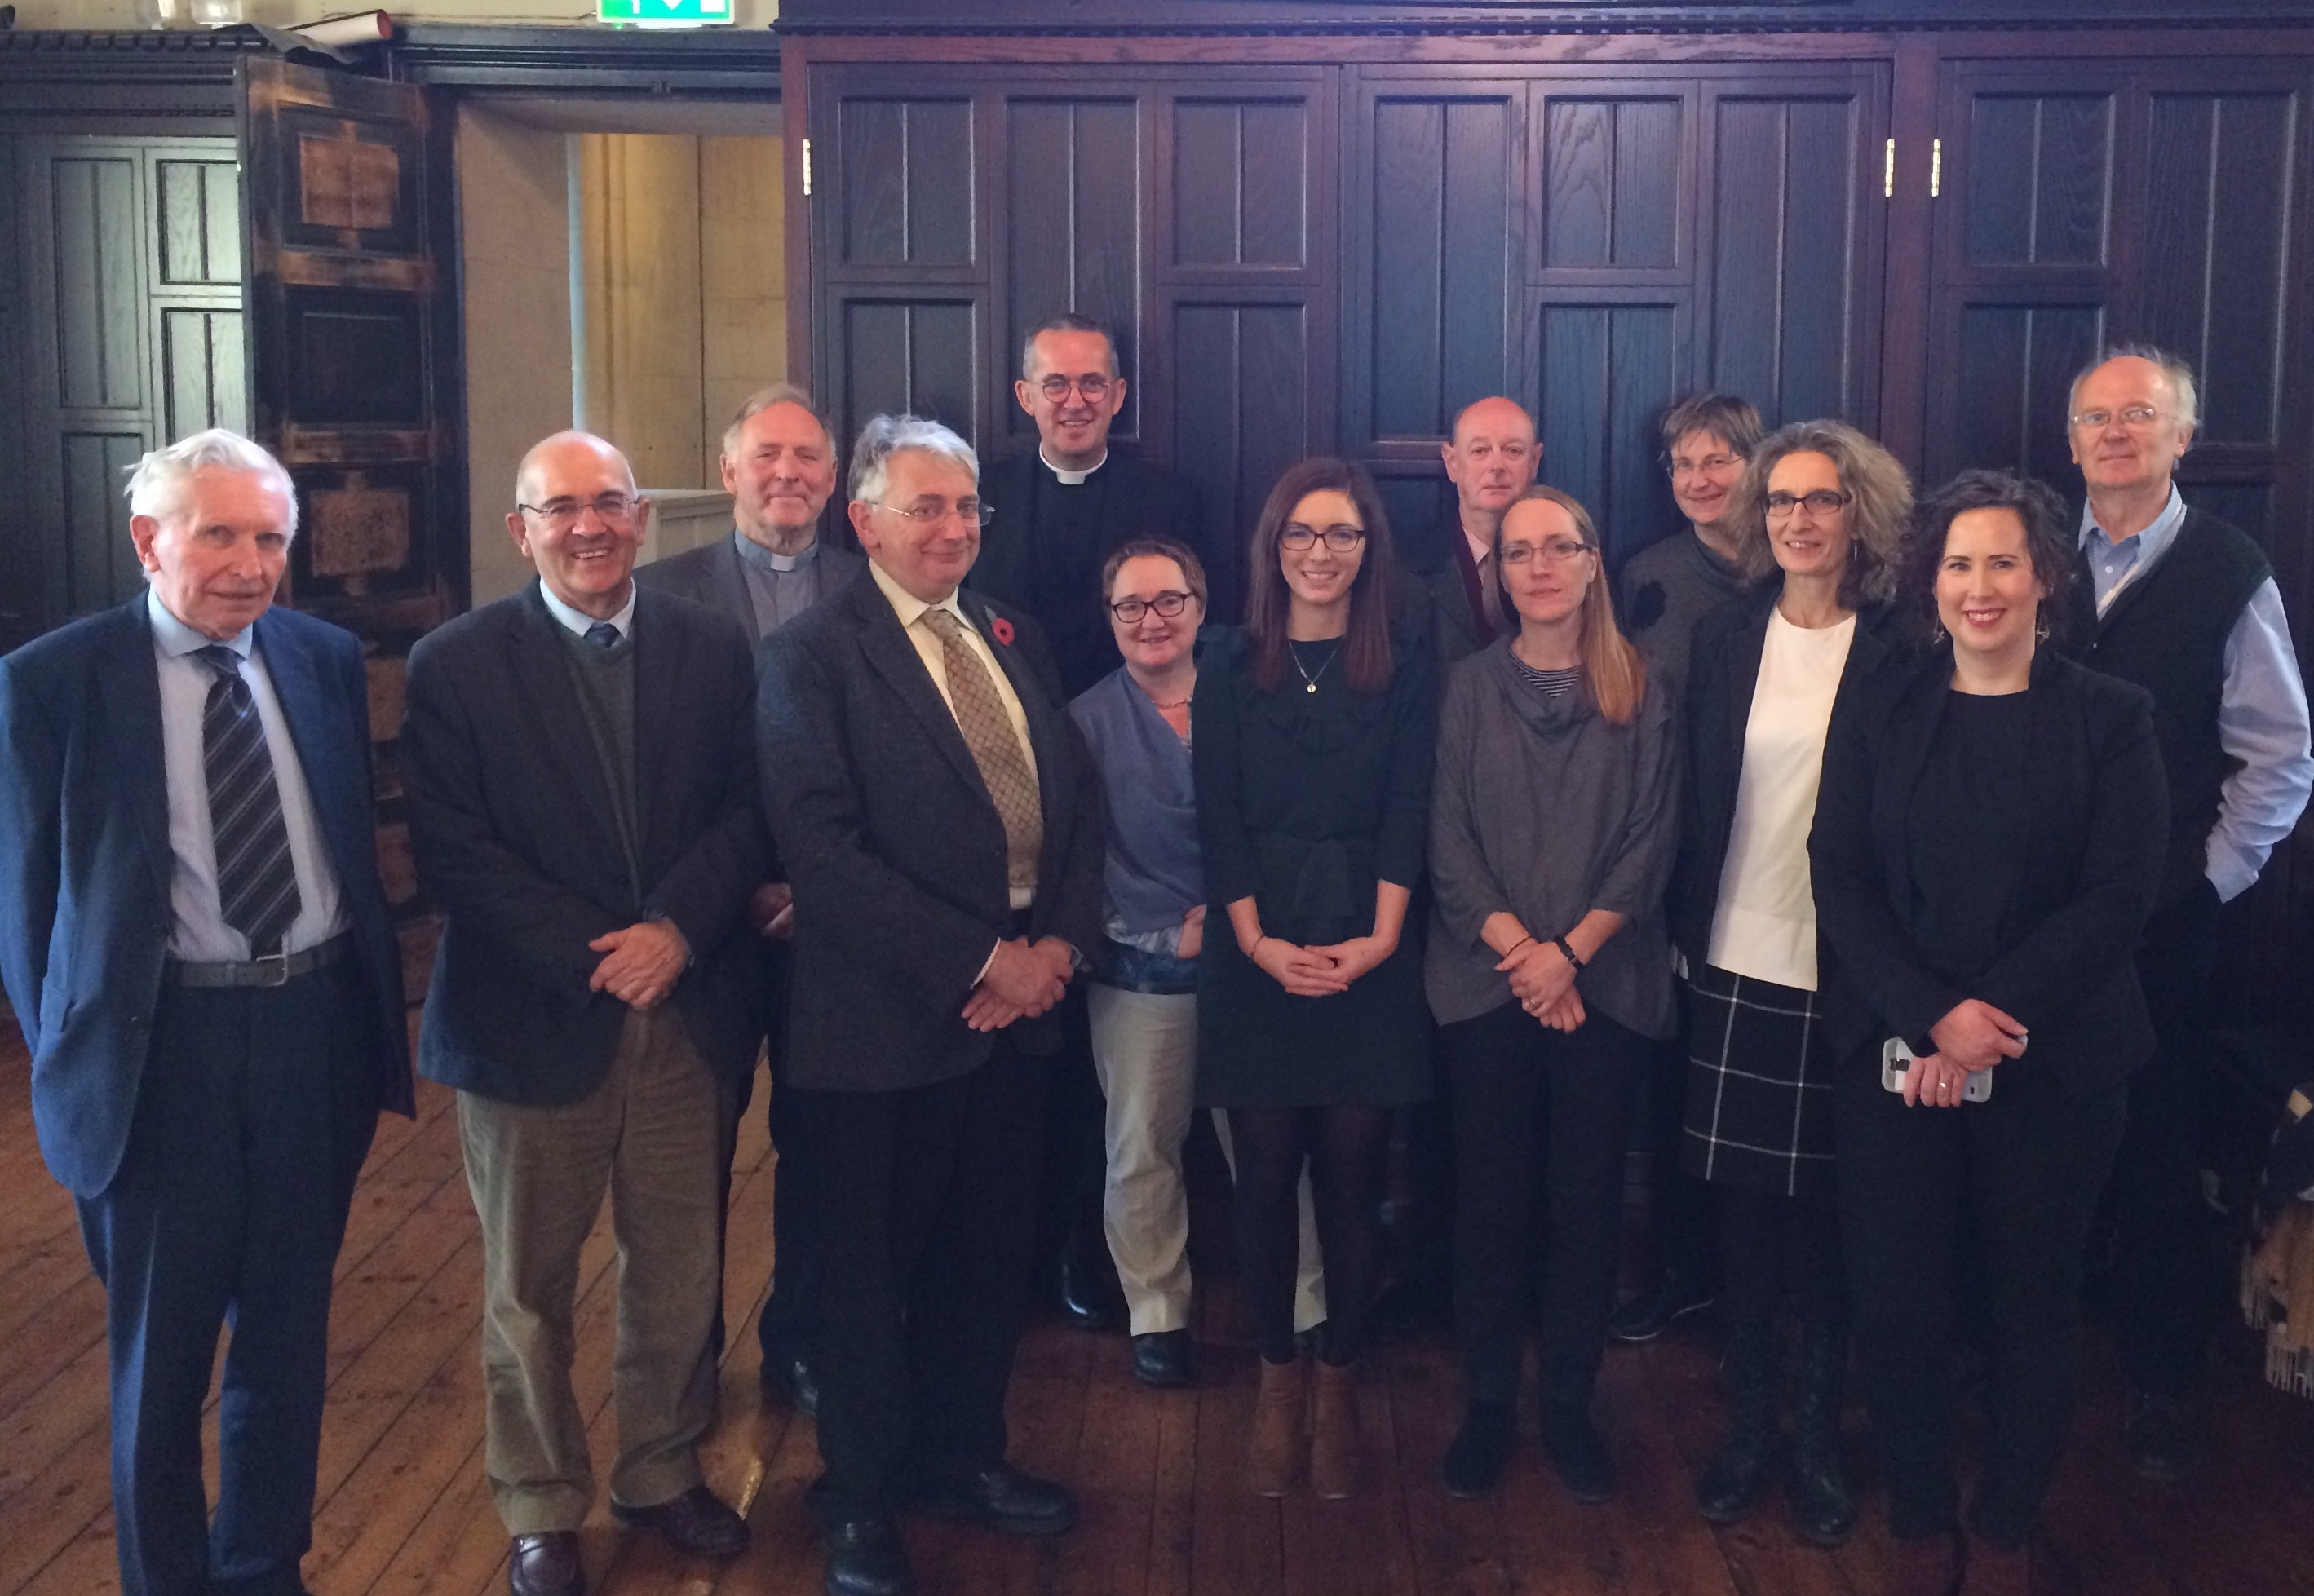 [Back row, left to right] Dr Adrian Empey, Very Reverend Dermot Dunne, Dr Raymond Refaussé, Dr Susan Hood, Mr Brendan Twomey [Front row, left to right] Dr Kenneth Milne, Professor David Hayton, Mr George Woodman, Dr Miriam Moffitt, Dr Bronagh McShane, Dr Heather Jones, Dr Judith Hill, Dr Jennifer Redmond